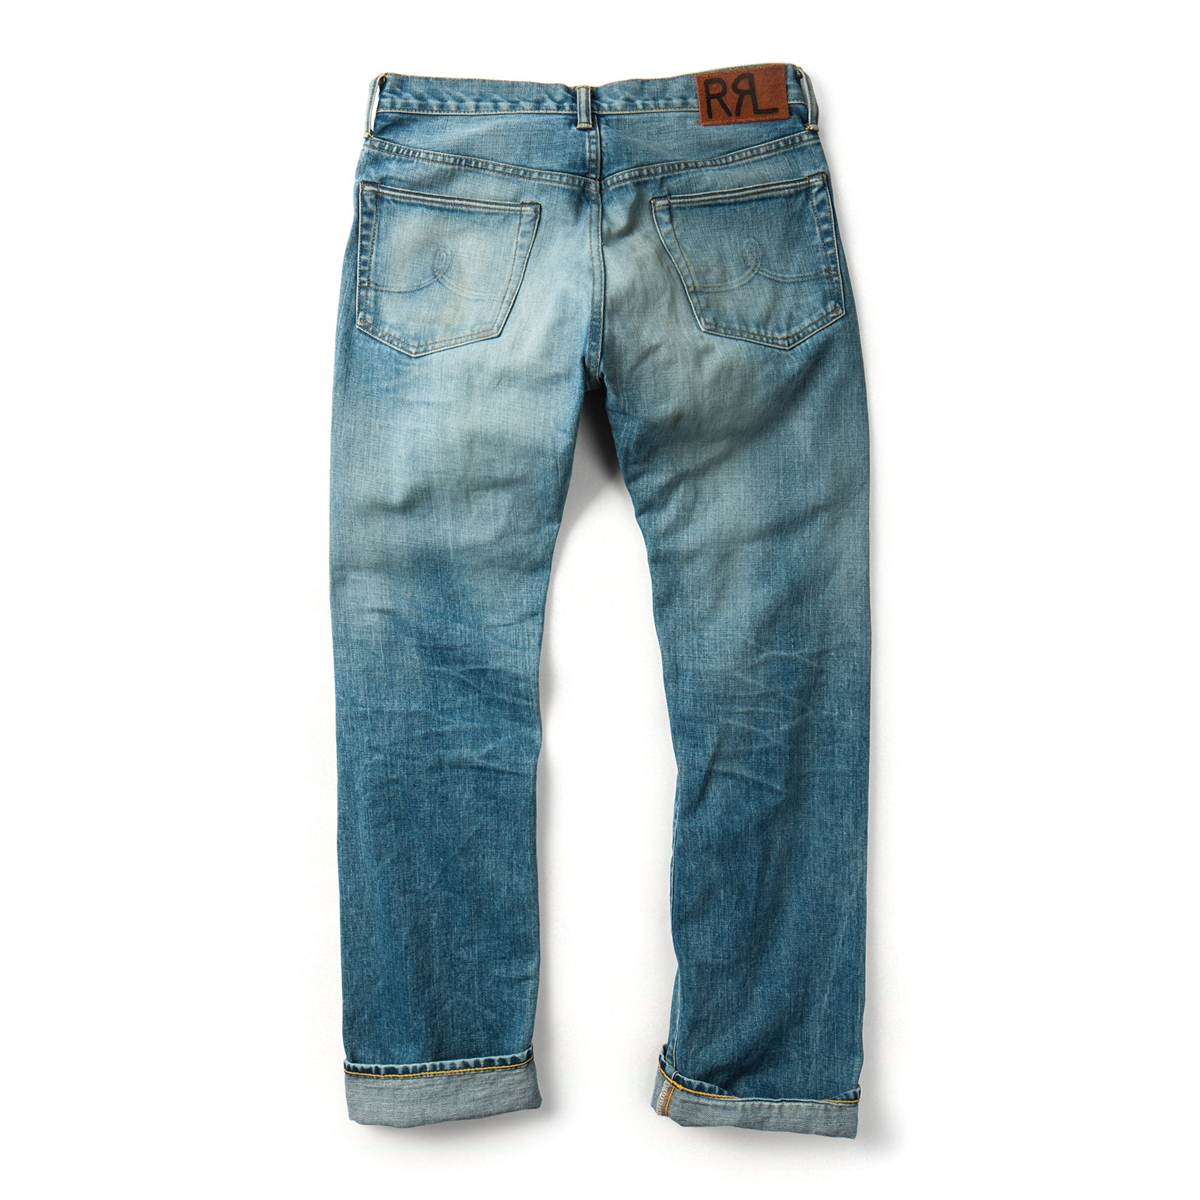 Ralph Lauren Double Rl Rrl Straight Leg Selvedge Jeans In Dylan